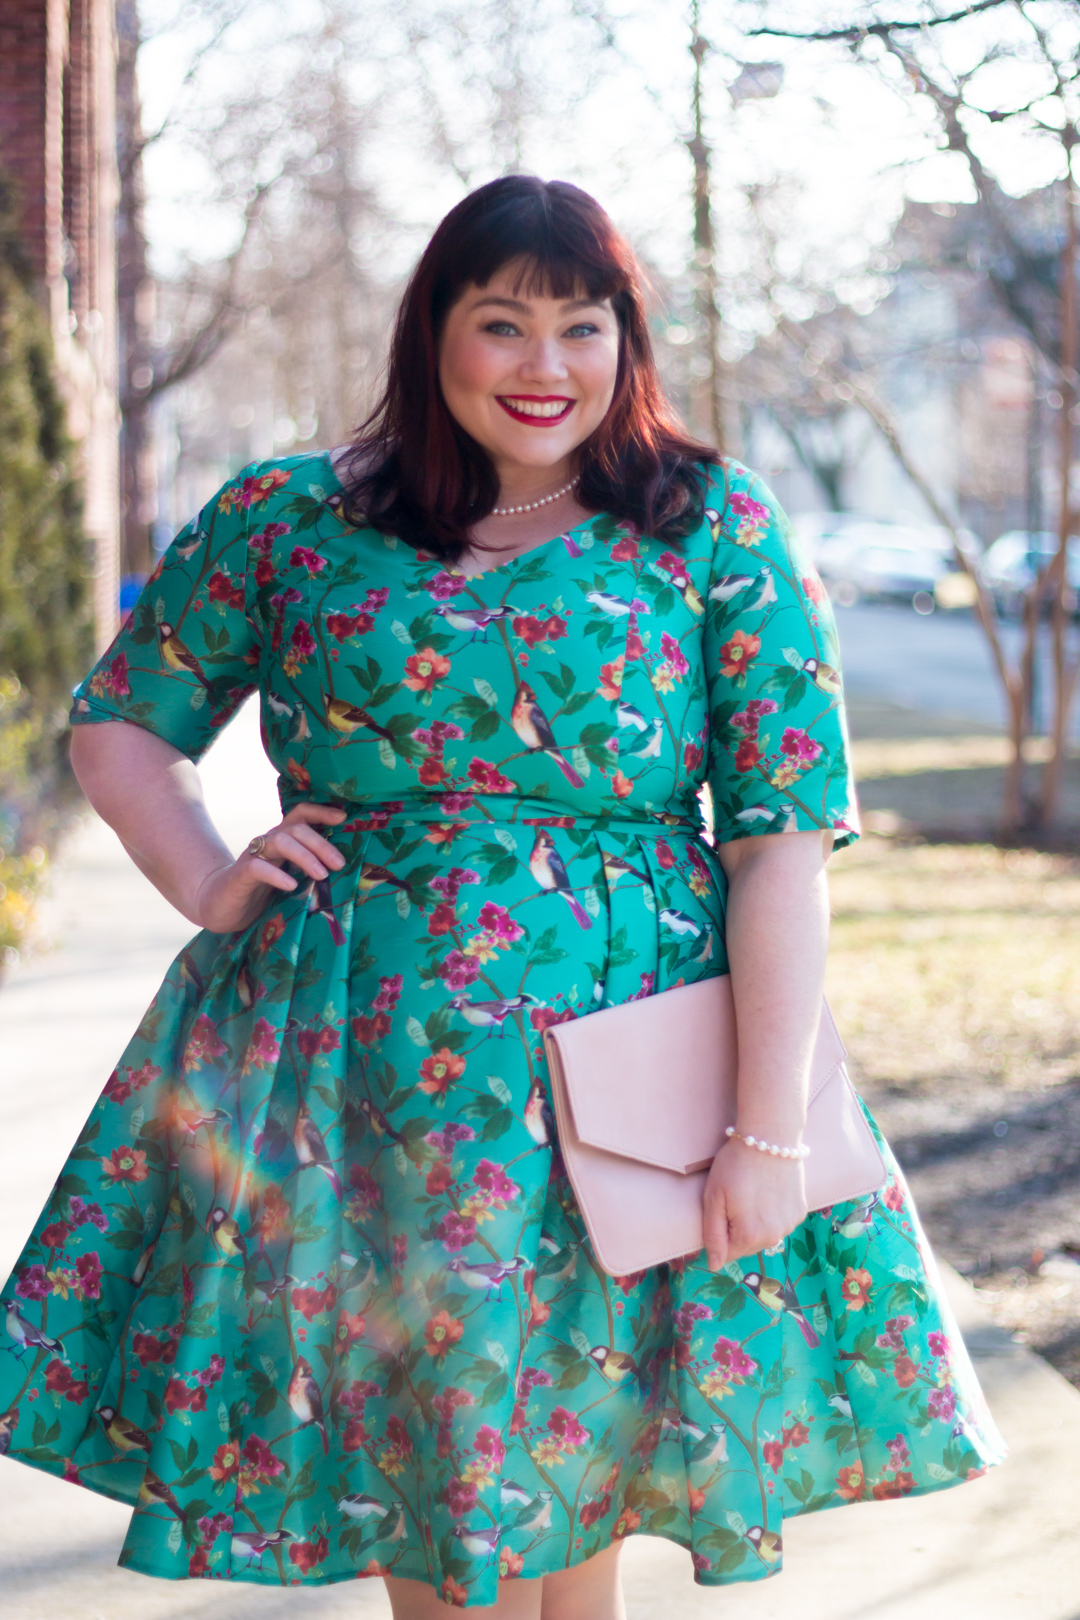 2e5cbf48fa7 Plus Size Blogger Amber in an eShakti dress with floral and bird print